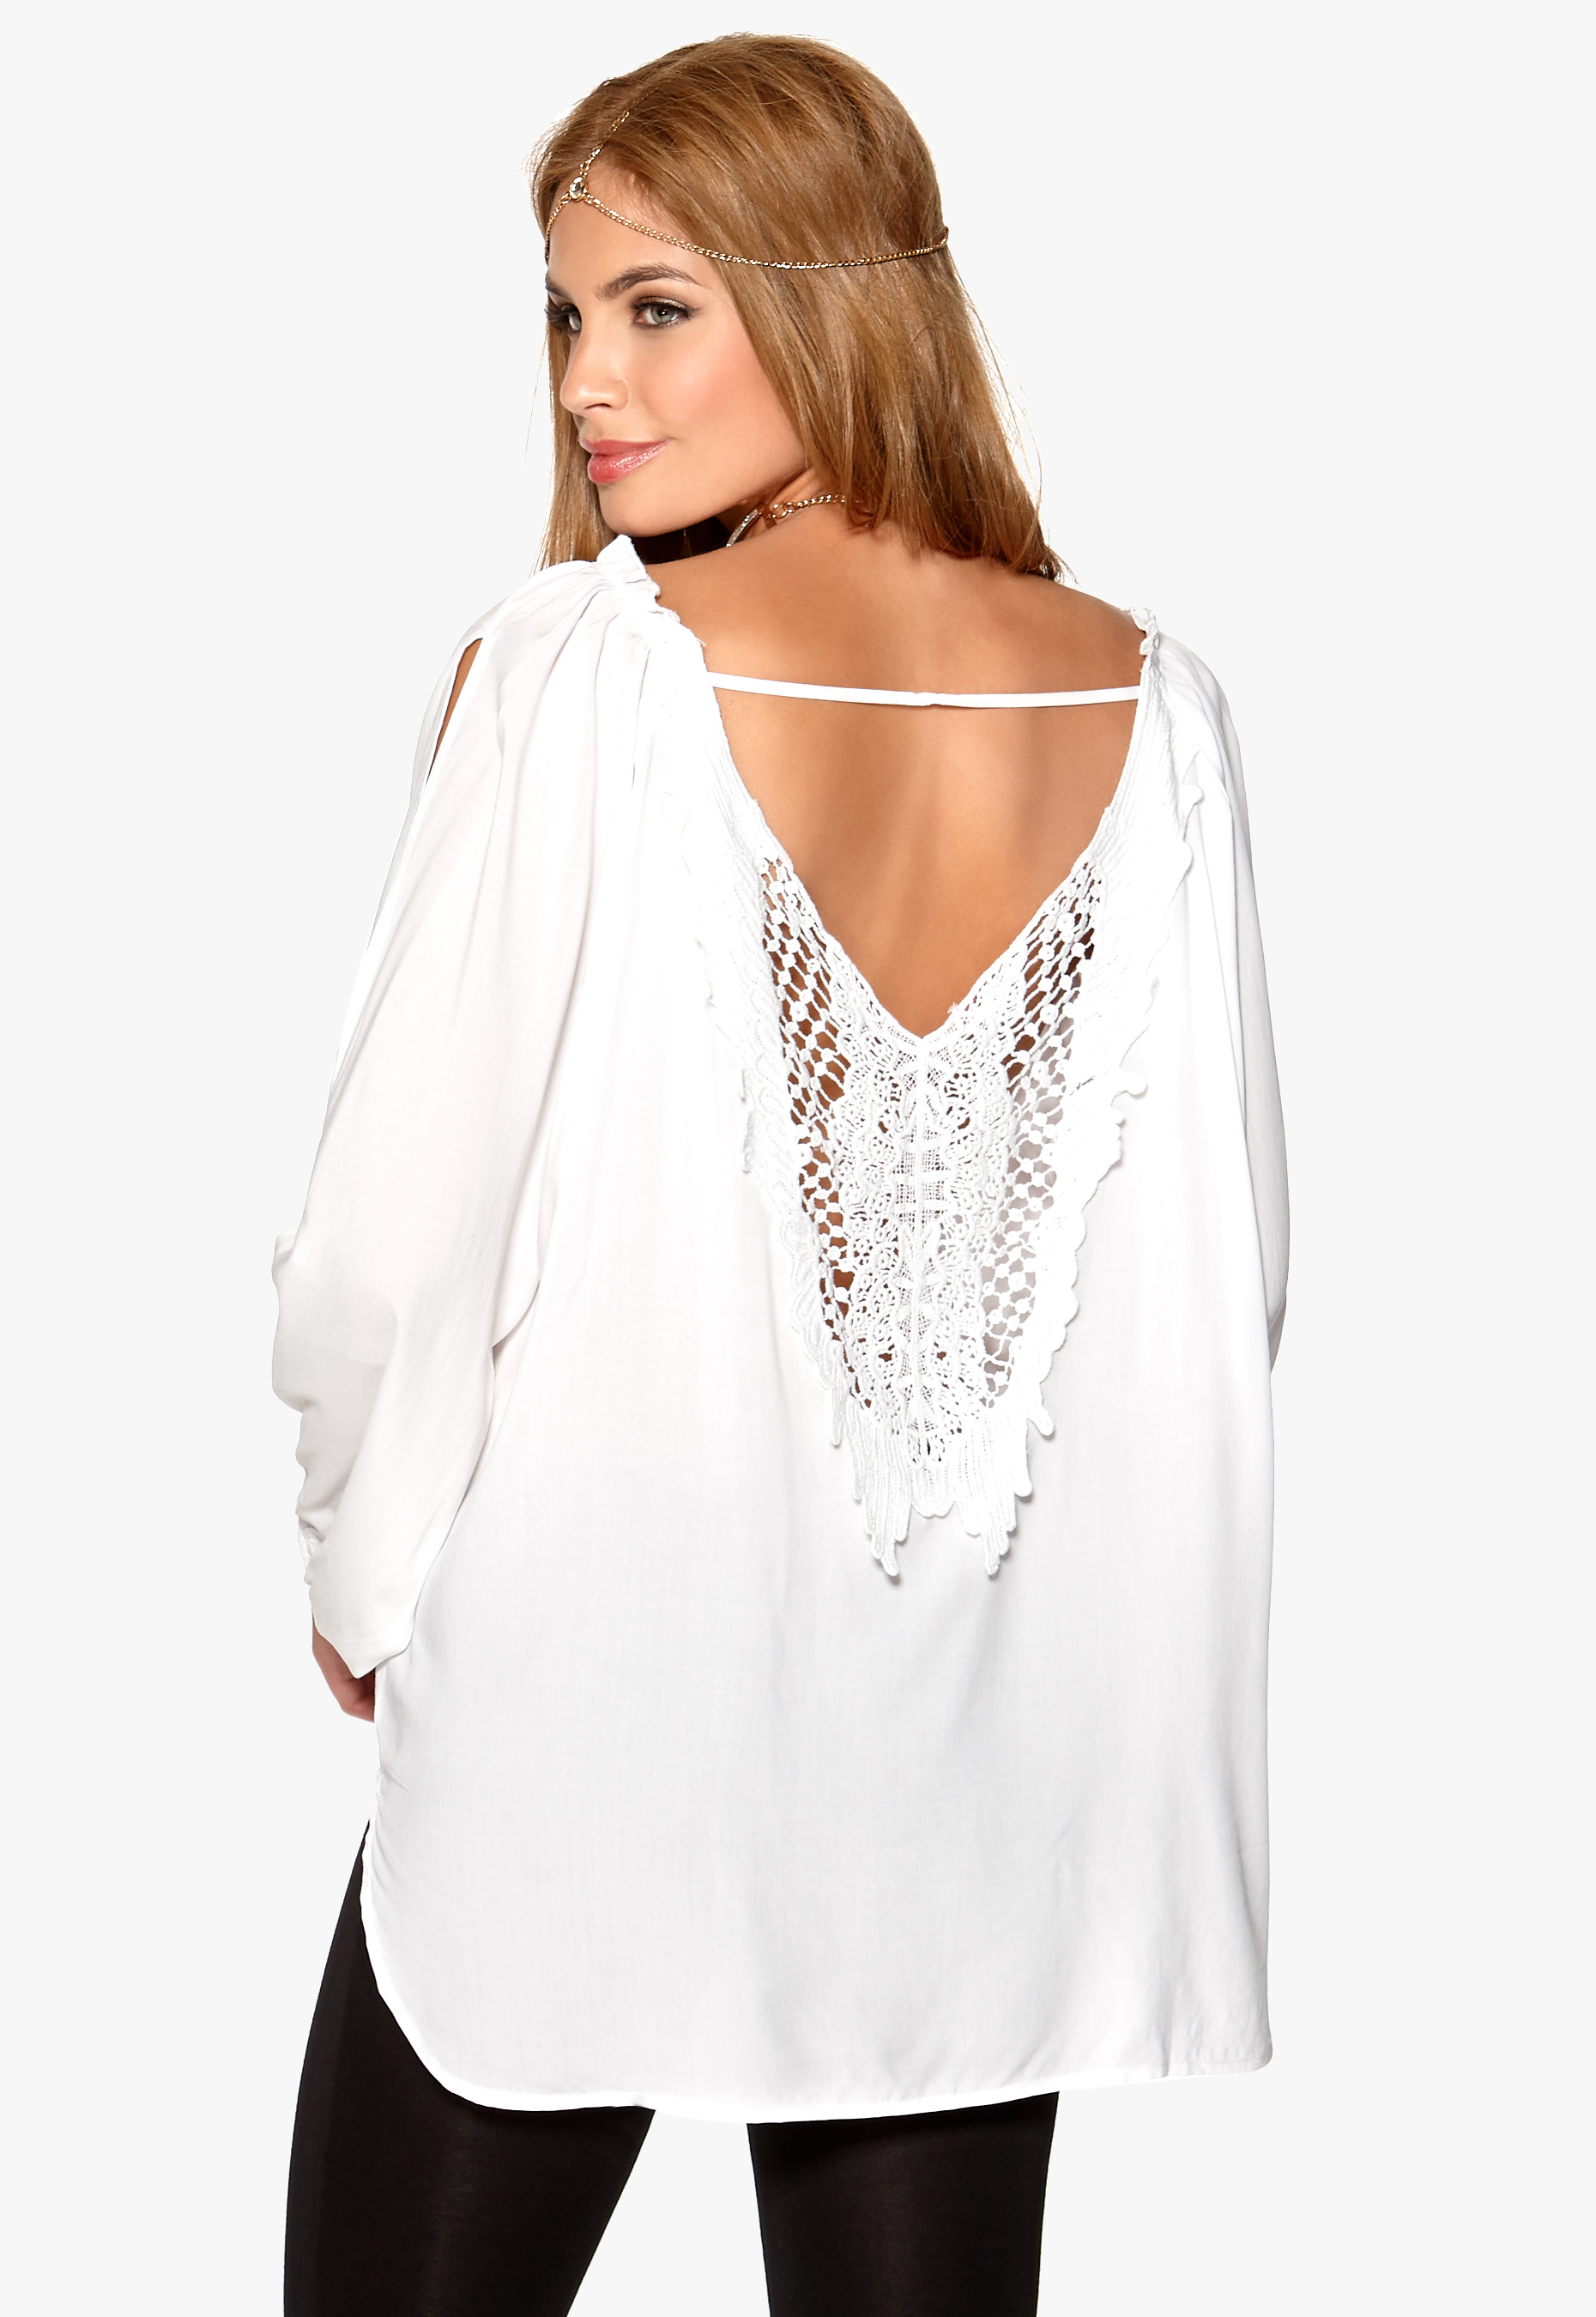 Buy blouses for women at low price rabbetedh.ga are latest styles for blouses and tops. Get the high quality cardigan and enjoy the best customer service and fast delivery.